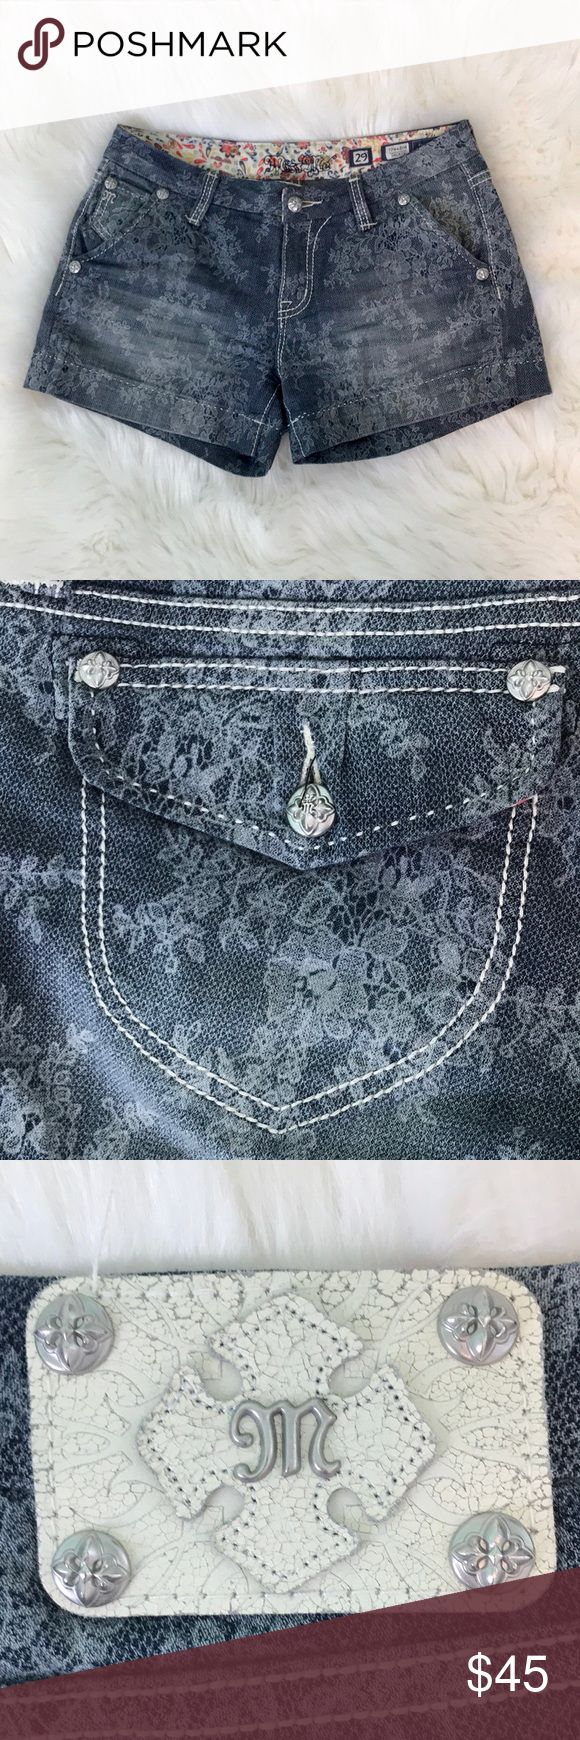 Miss Me Women's Indigo Lace Jean Shorts Fun pair of women's Miss Me Jean Shorts, size 29. Jean with unique lace print. Clean, straight edge on cuffs. Beautiful thick, white stitching. Classic look with a twist. Comes from clean, smoke free home. Open to offers/bundles, message me with questions :) Miss Me Shorts Jean Shorts